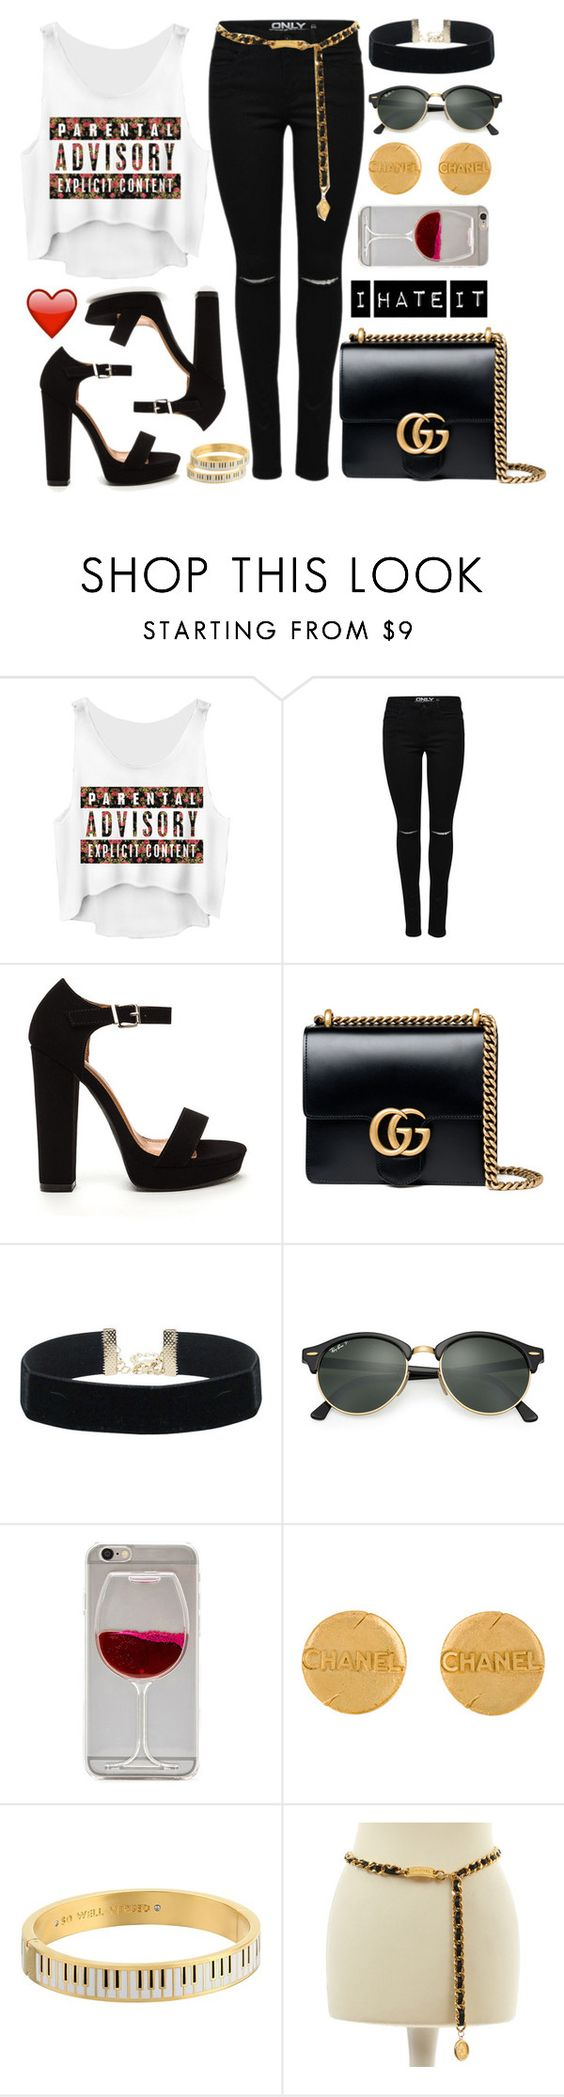 """""""Insecurity."""" by luablackoficial ❤ liked on Polyvore featuring Gucci, Ray-Ban, Chanel, Kate Spade, black, polyvoreeditorial, howtowearcroptop and luablackoficial"""